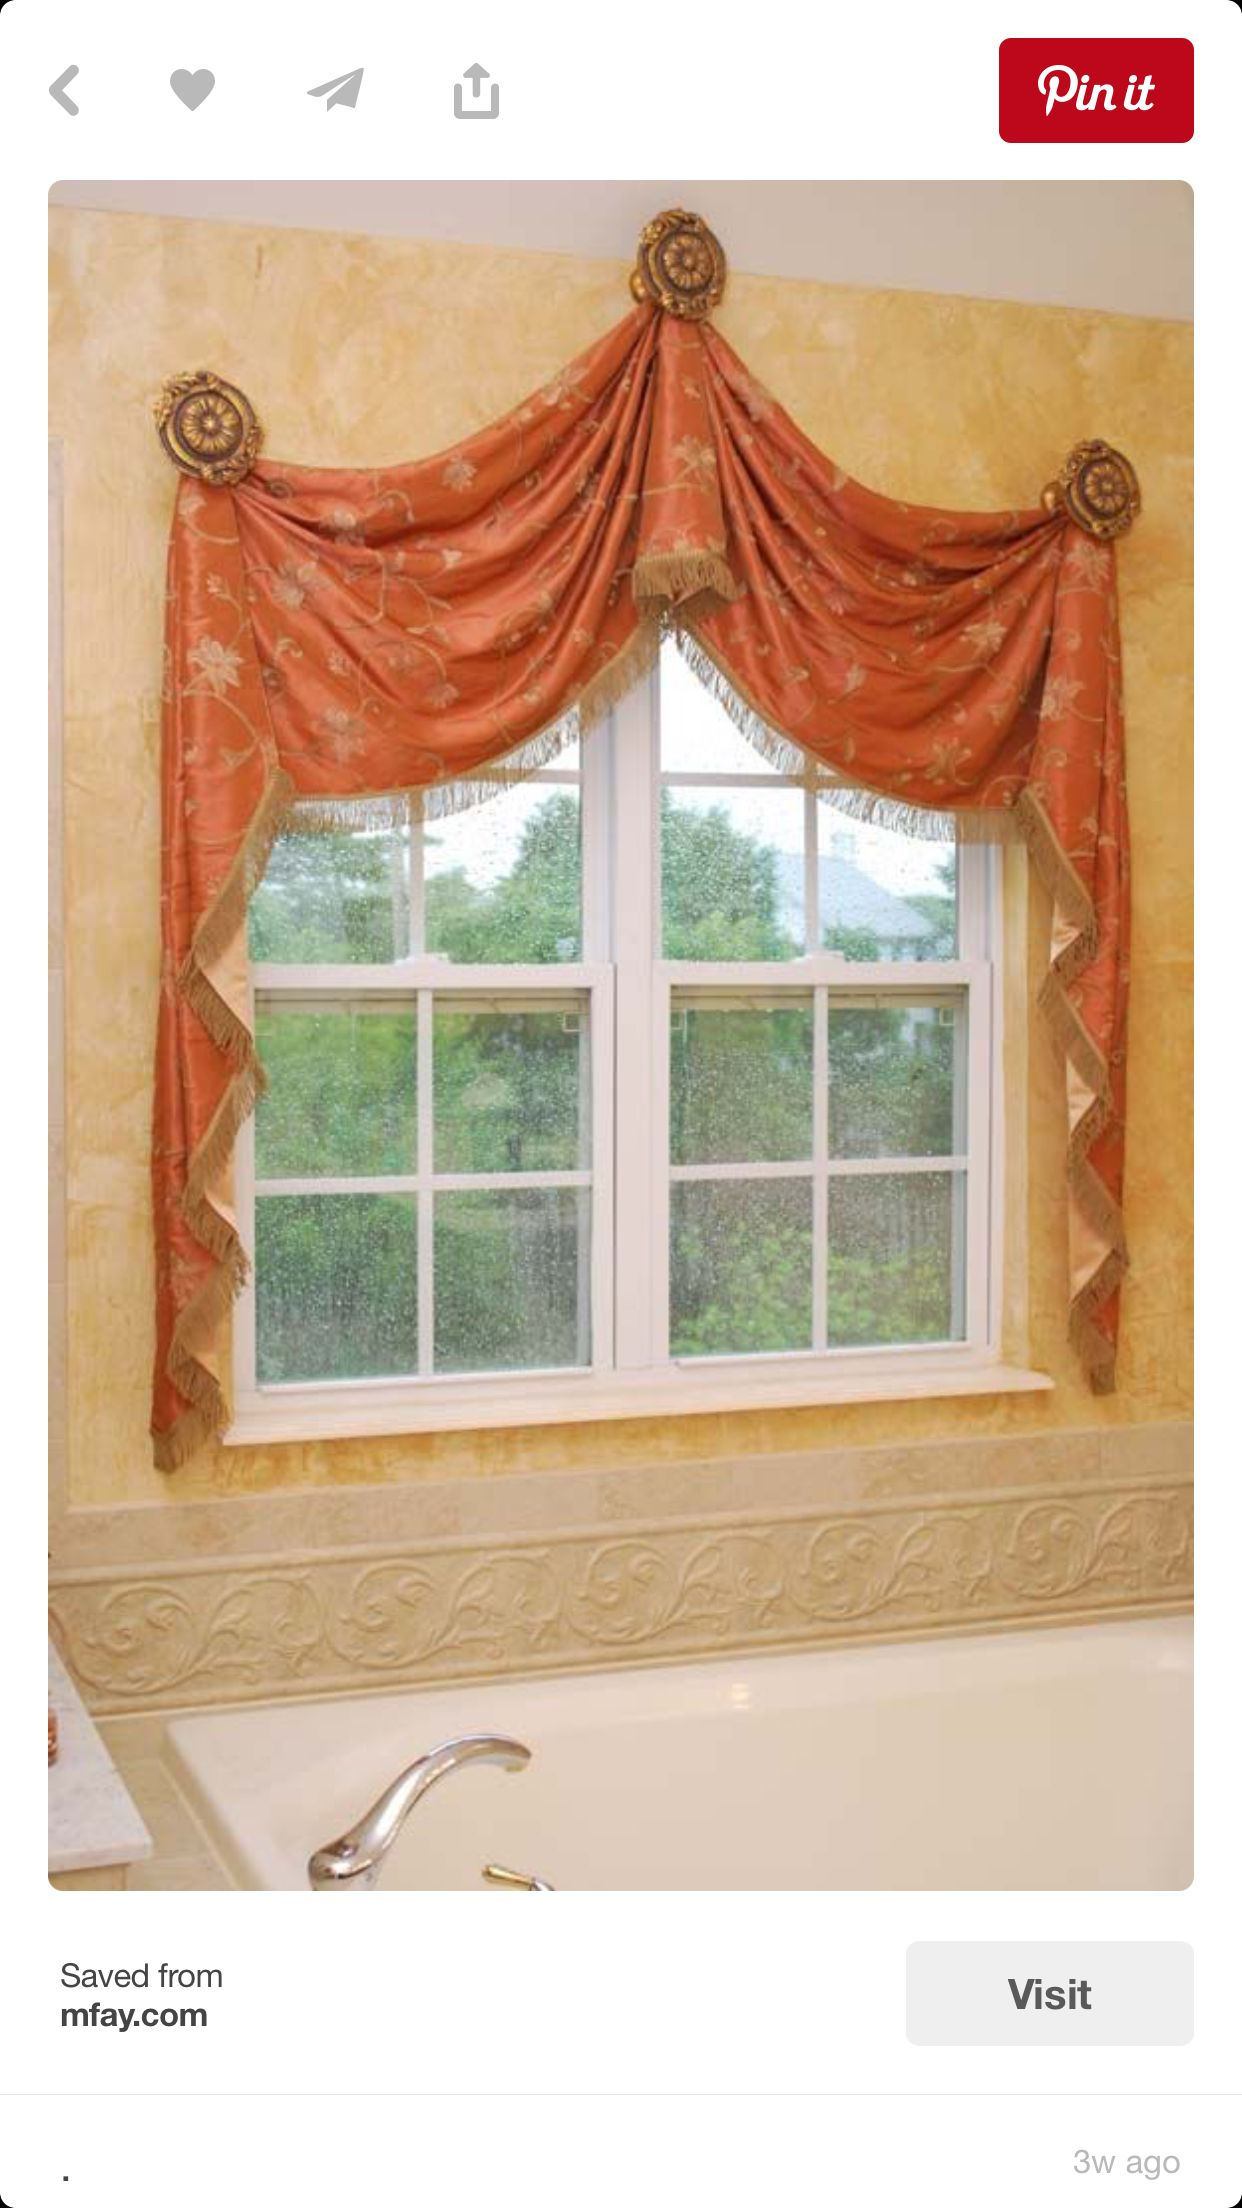 Window coverings arched windows  pin by jessie dussart on portal bankets  pinterest  window